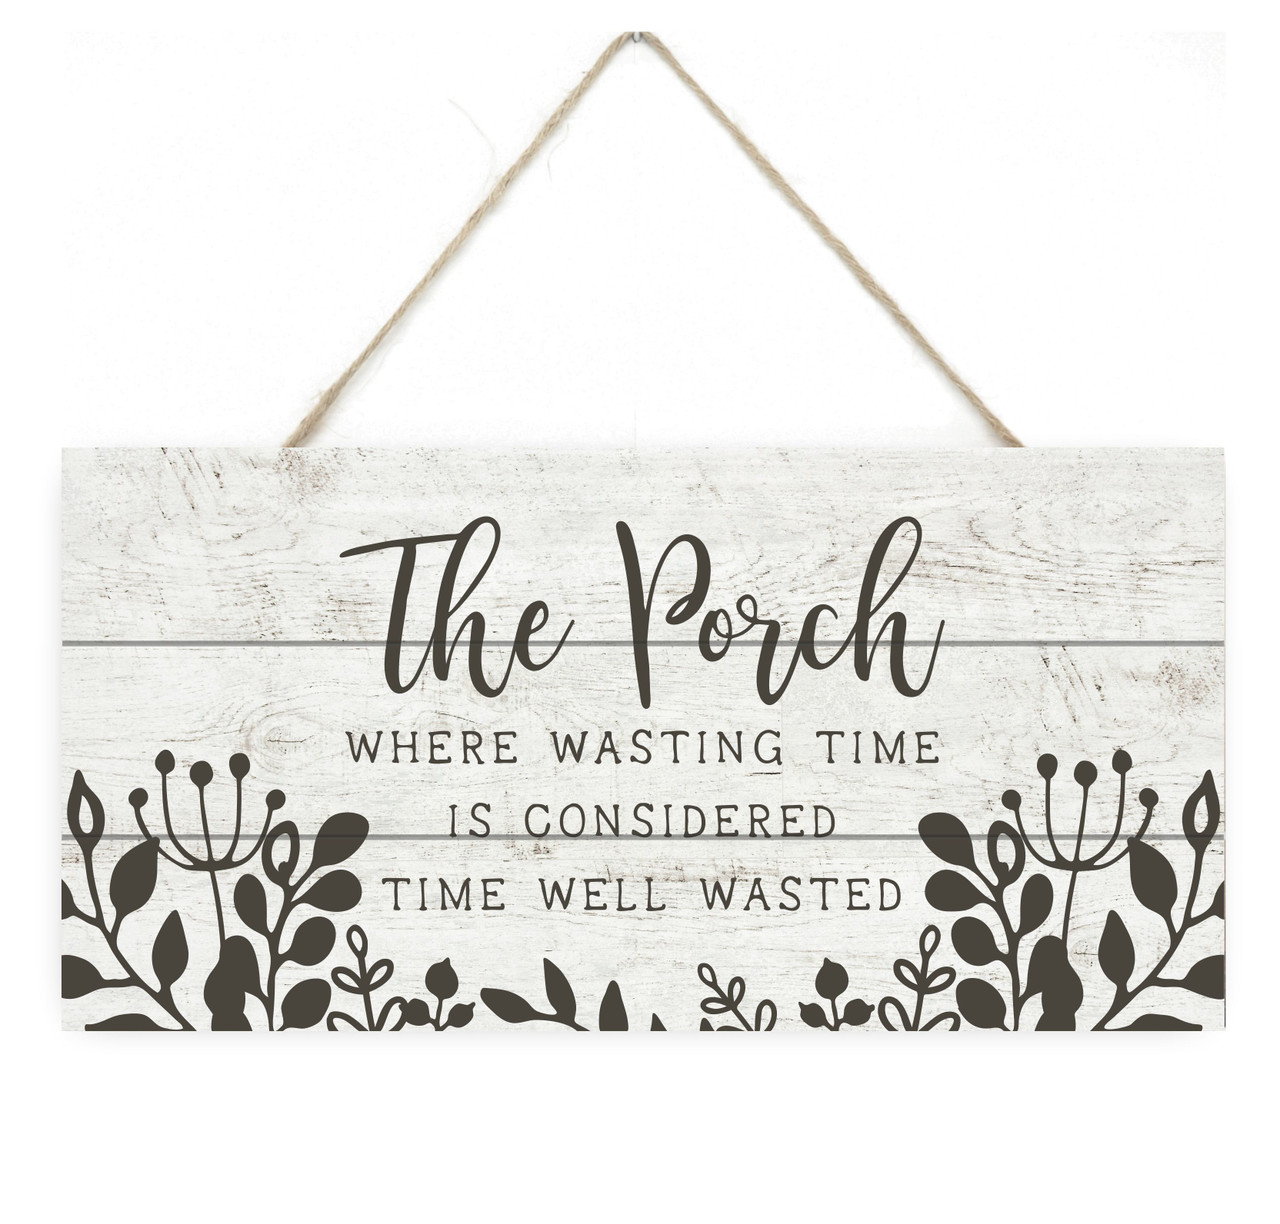 large welcome to the porch where wasting time is time well wasted rustic sign porch sign outdoor porch decor backyard decor outdoor decor